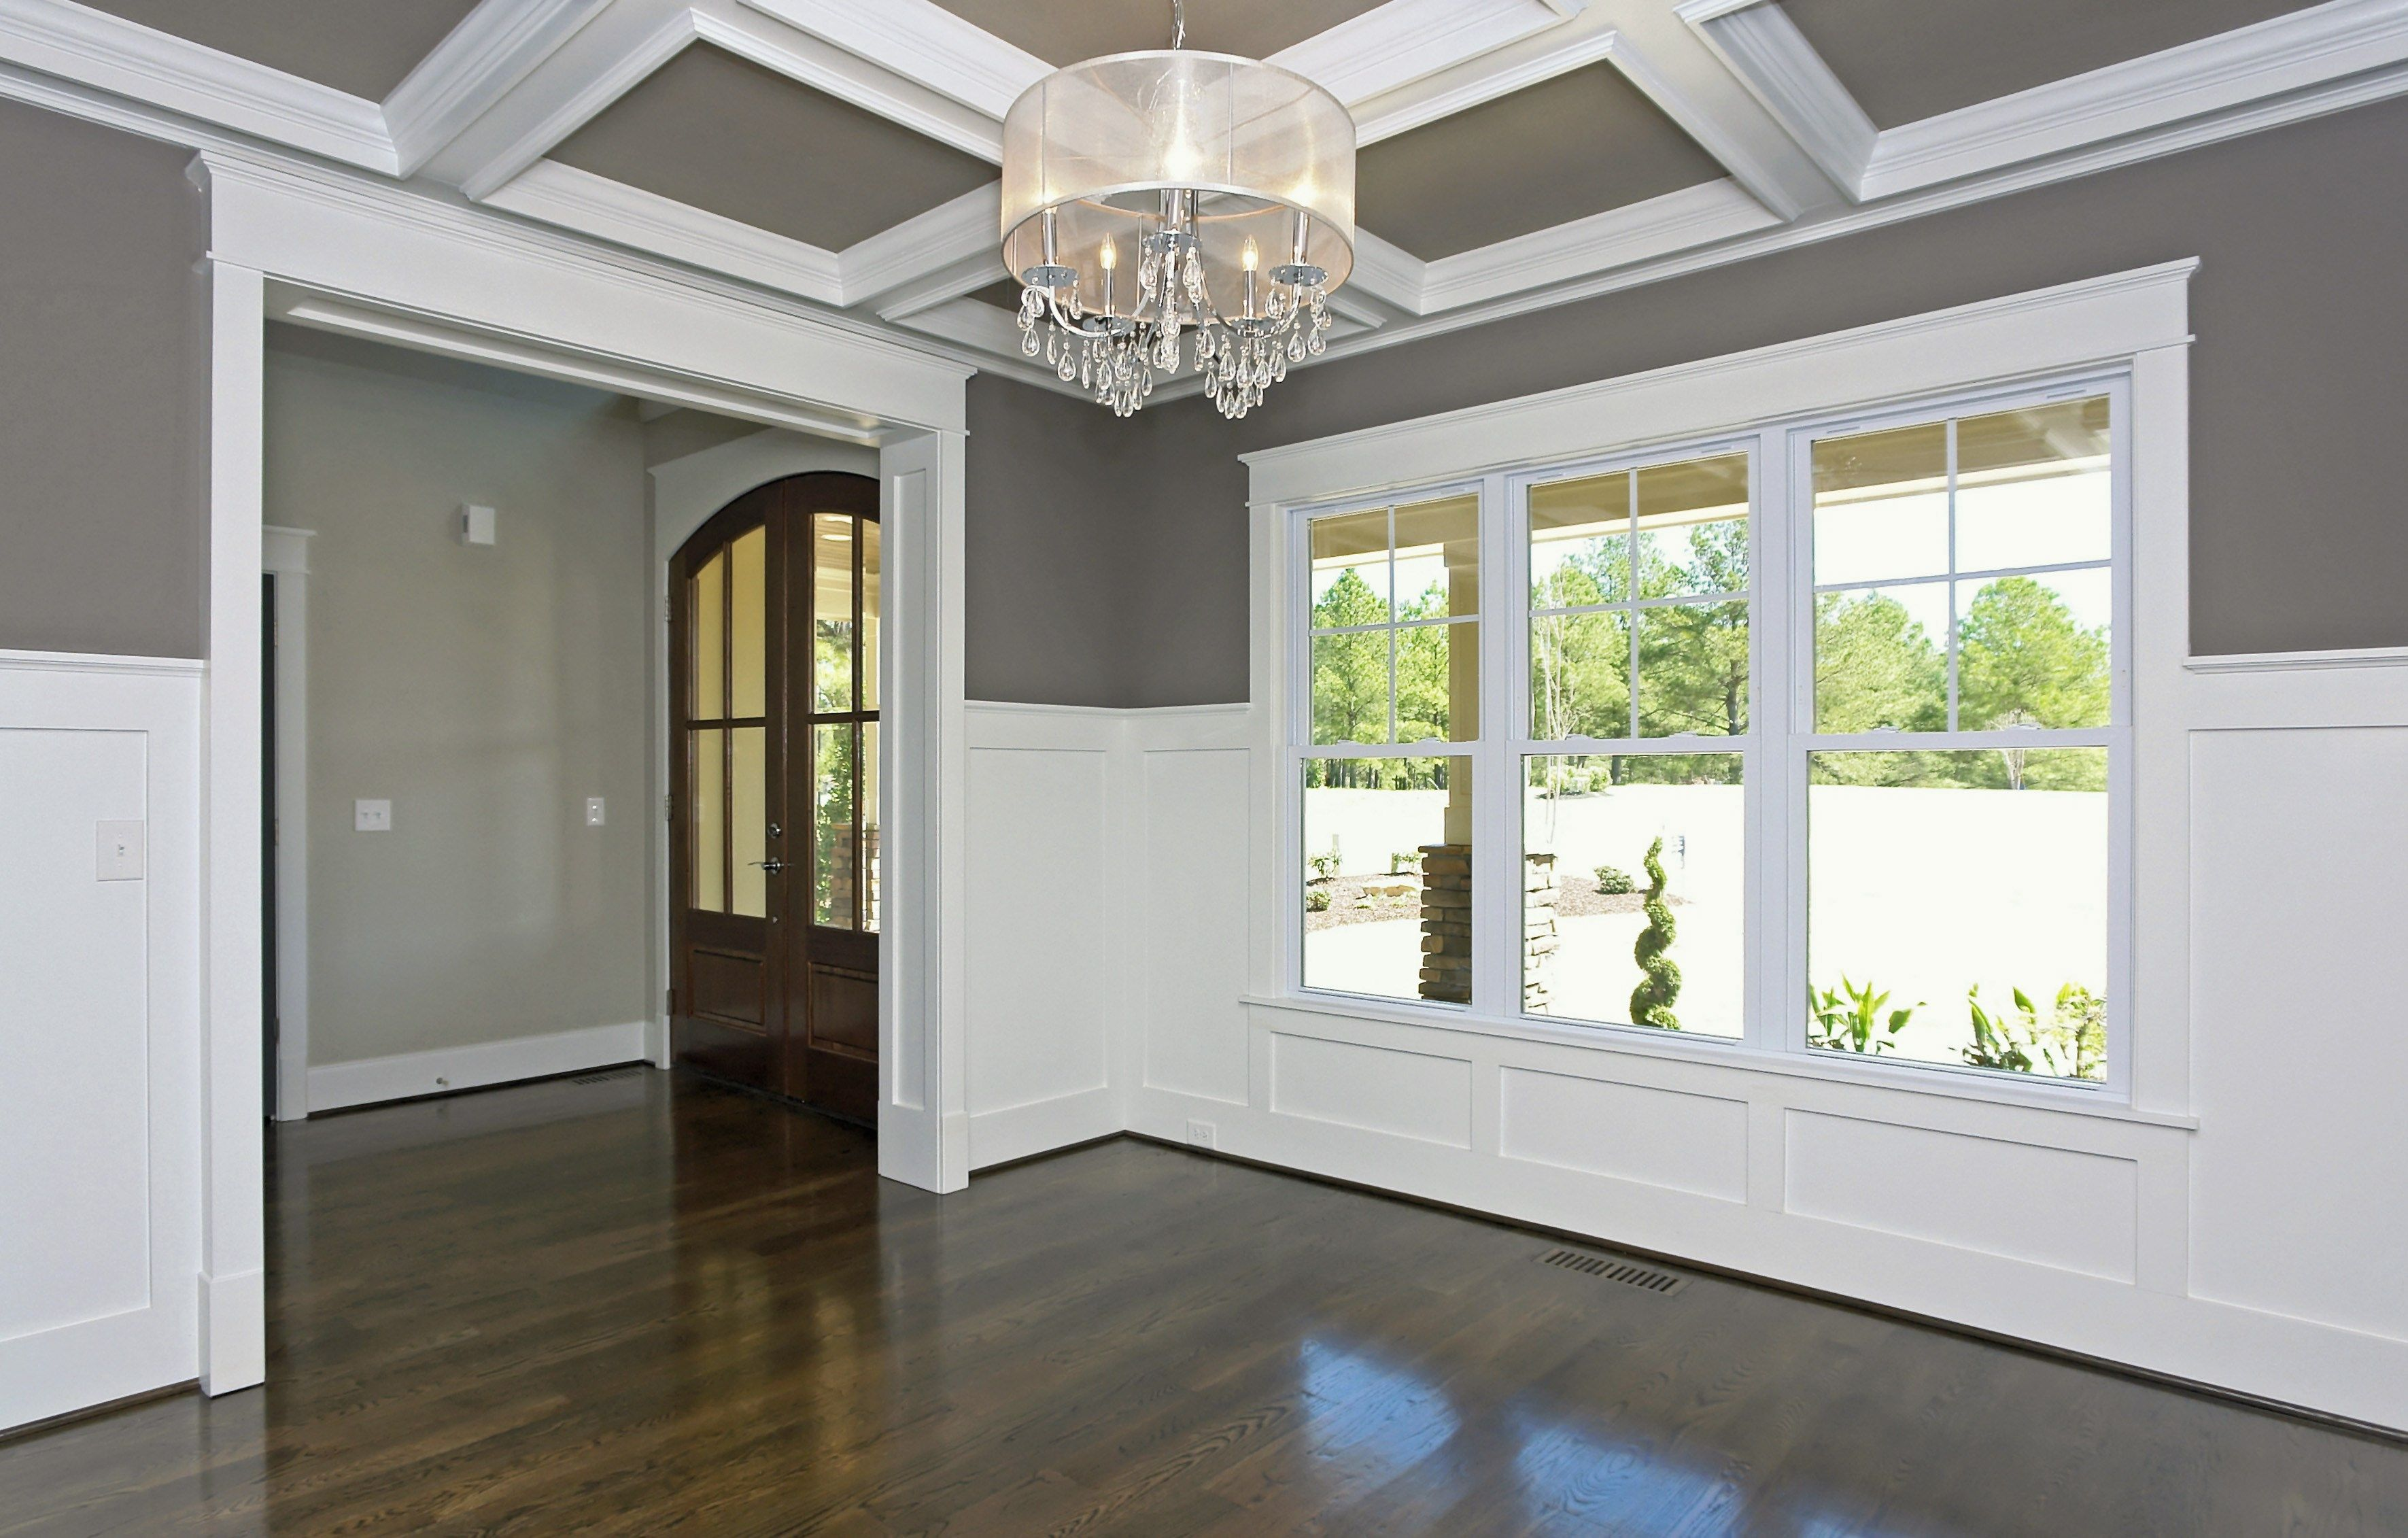 coffer ceiling dining room room wall colors dining room wainscoting dining room walls. Black Bedroom Furniture Sets. Home Design Ideas